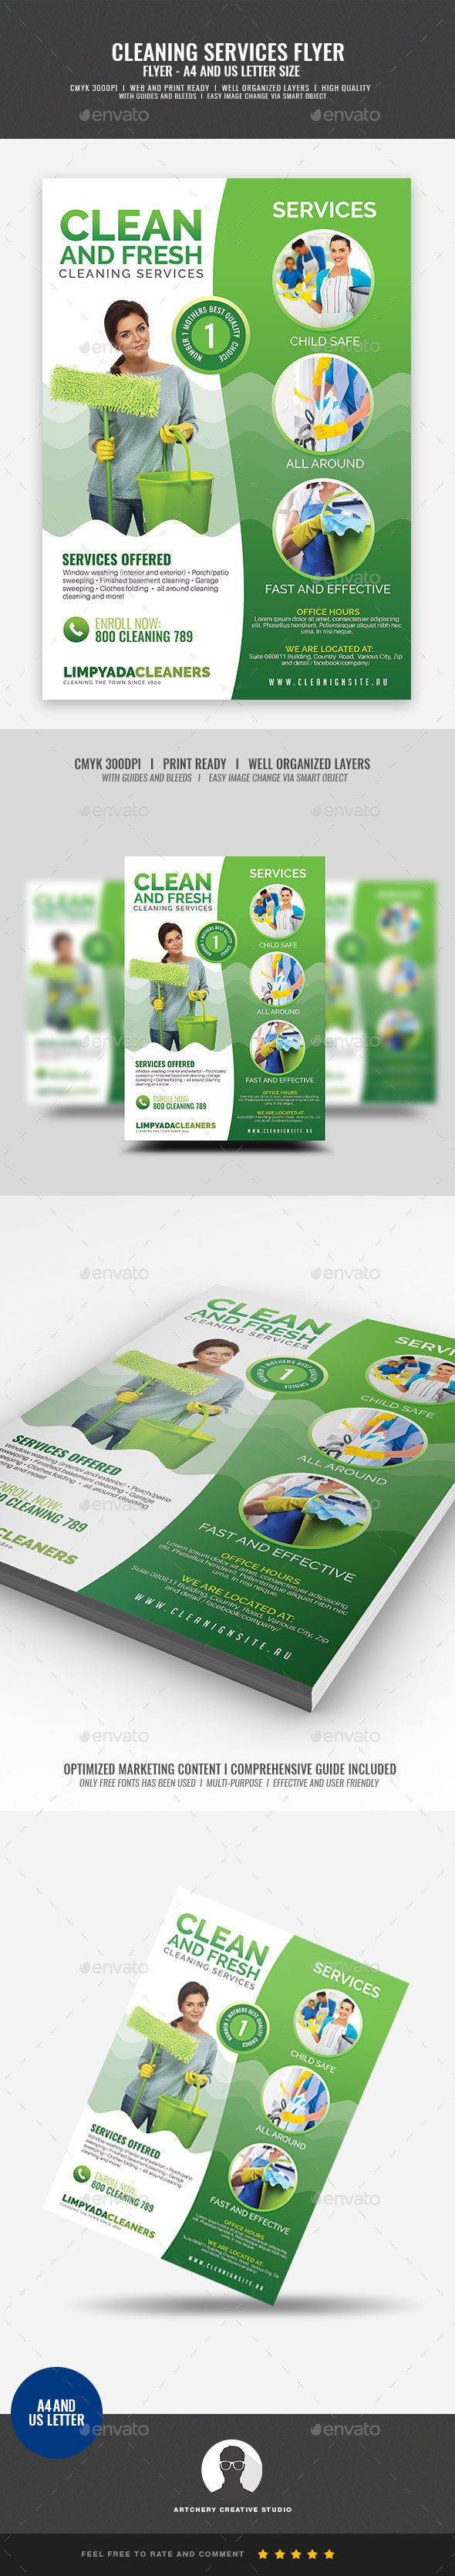 House Cleaning Services Promotional Flyer Template Psd Cleaning